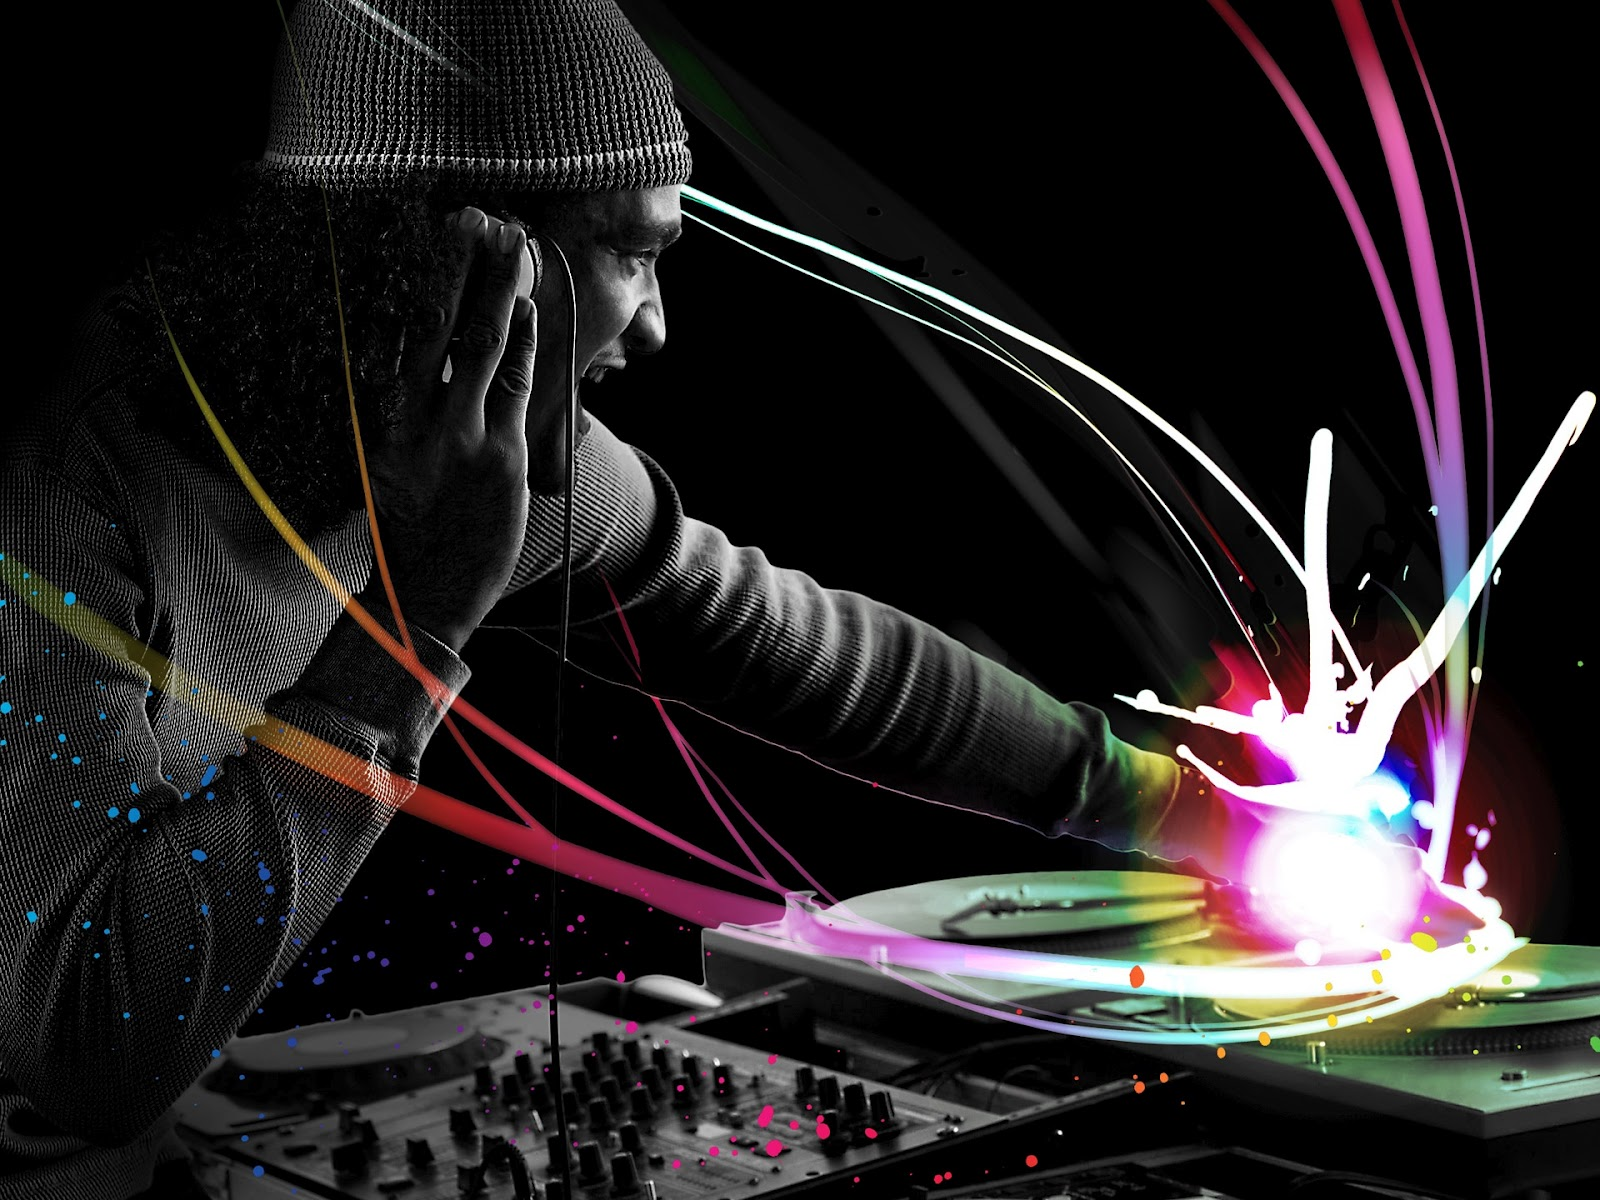 Dj songs hd wallpapers